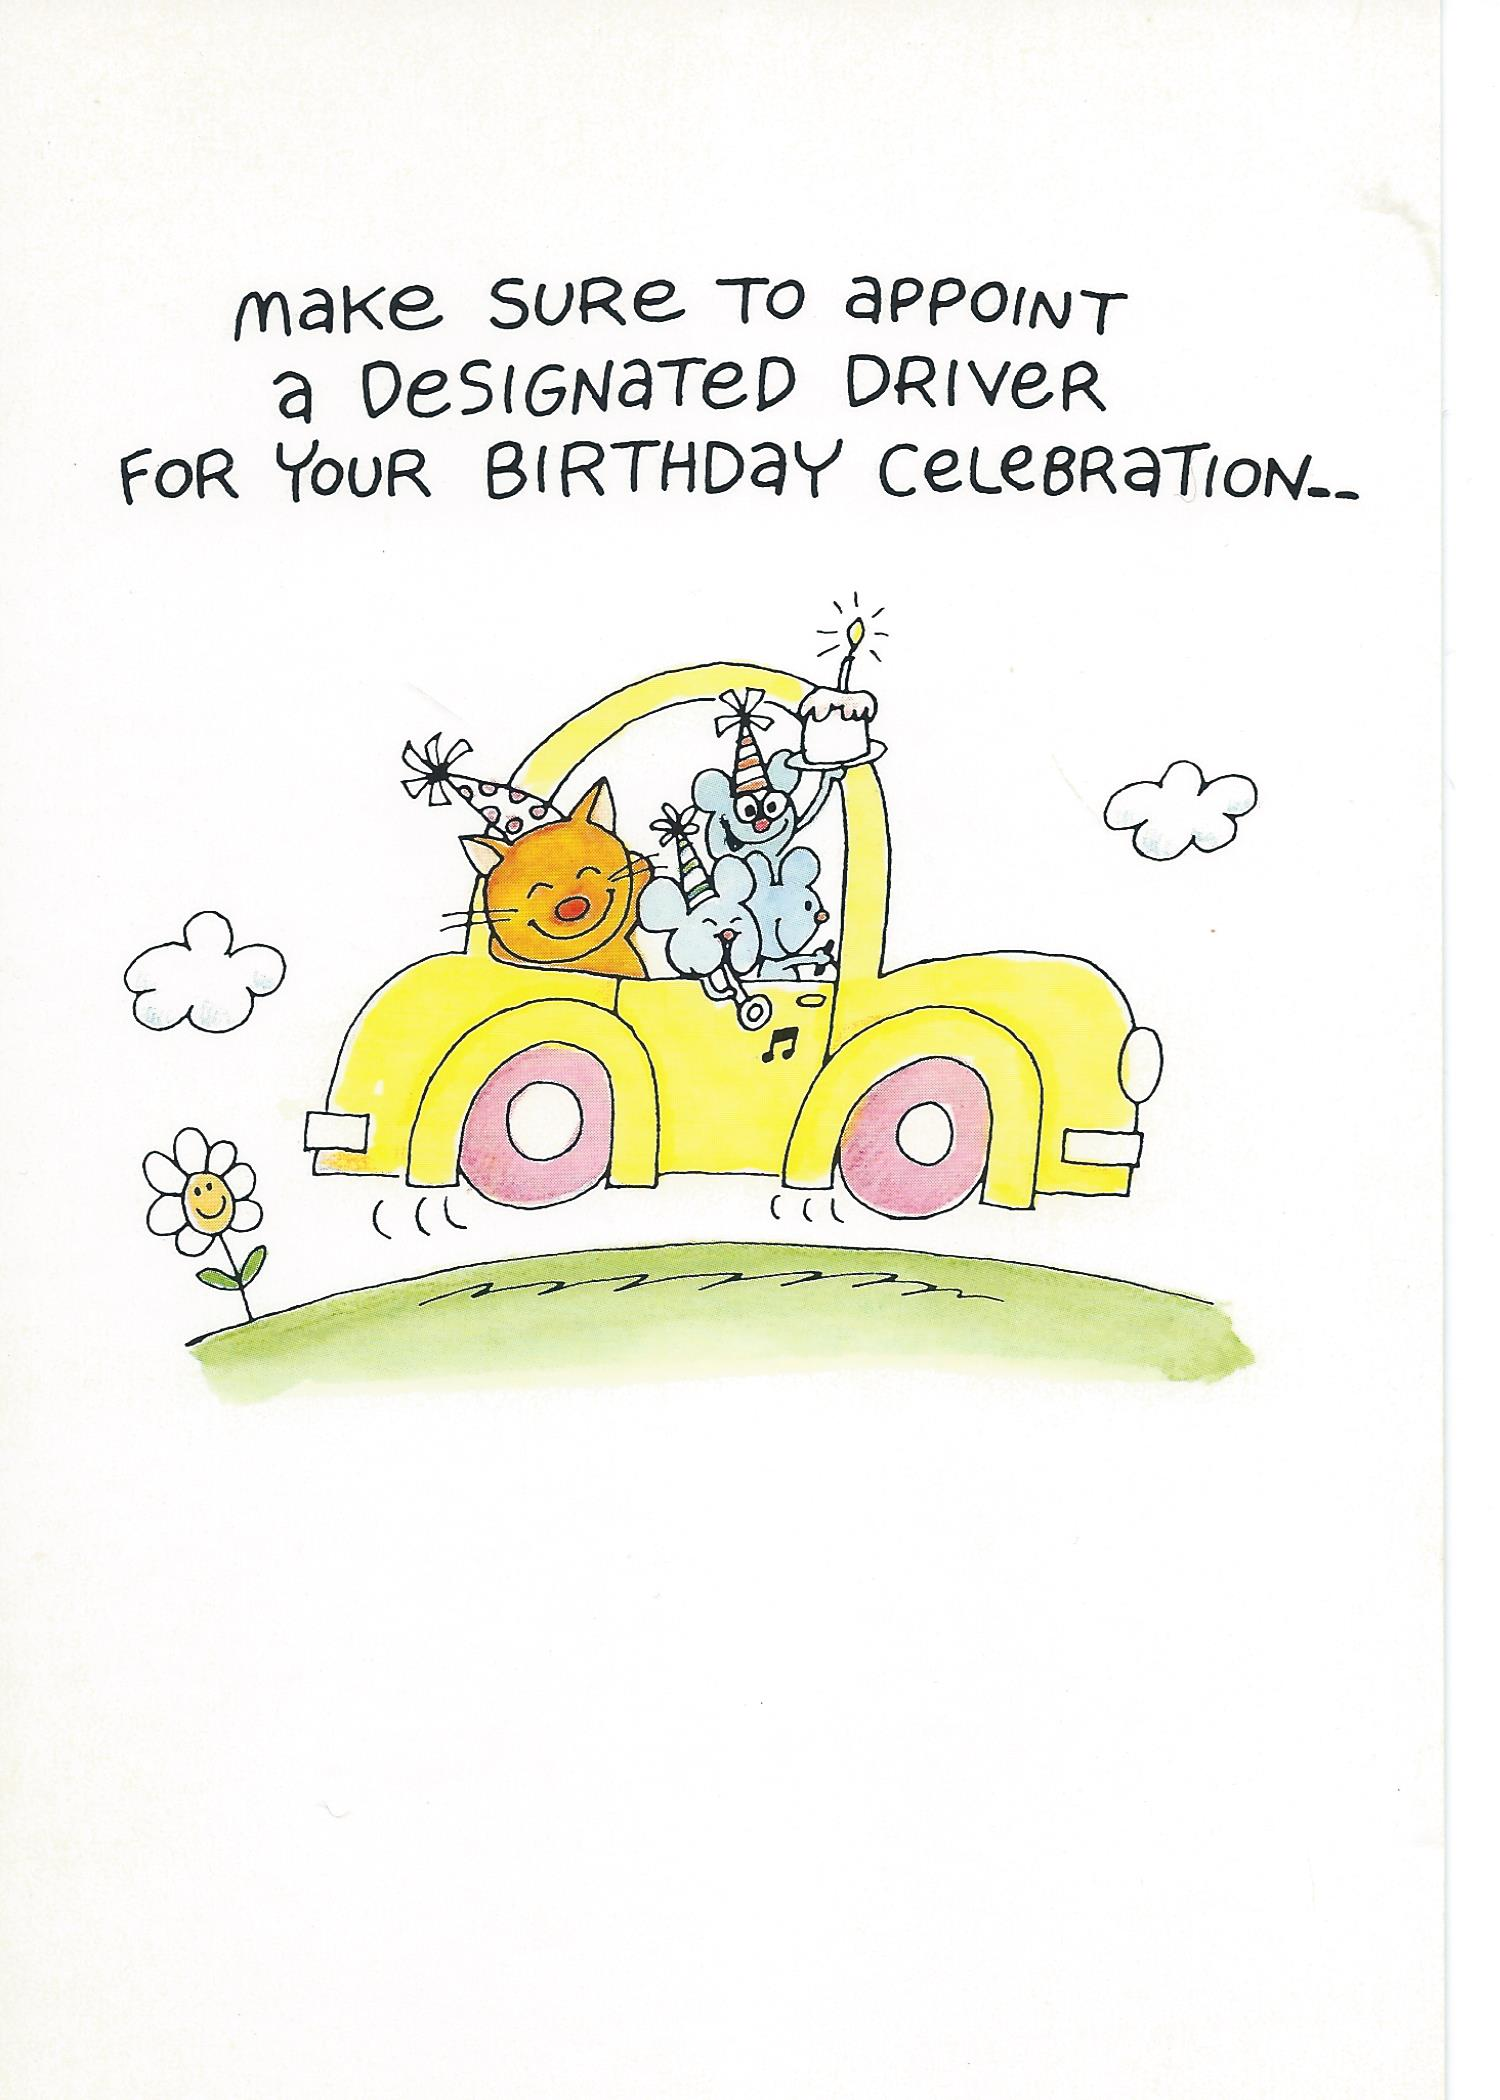 Make sure to appoint a designated driver for your birthday celebration...